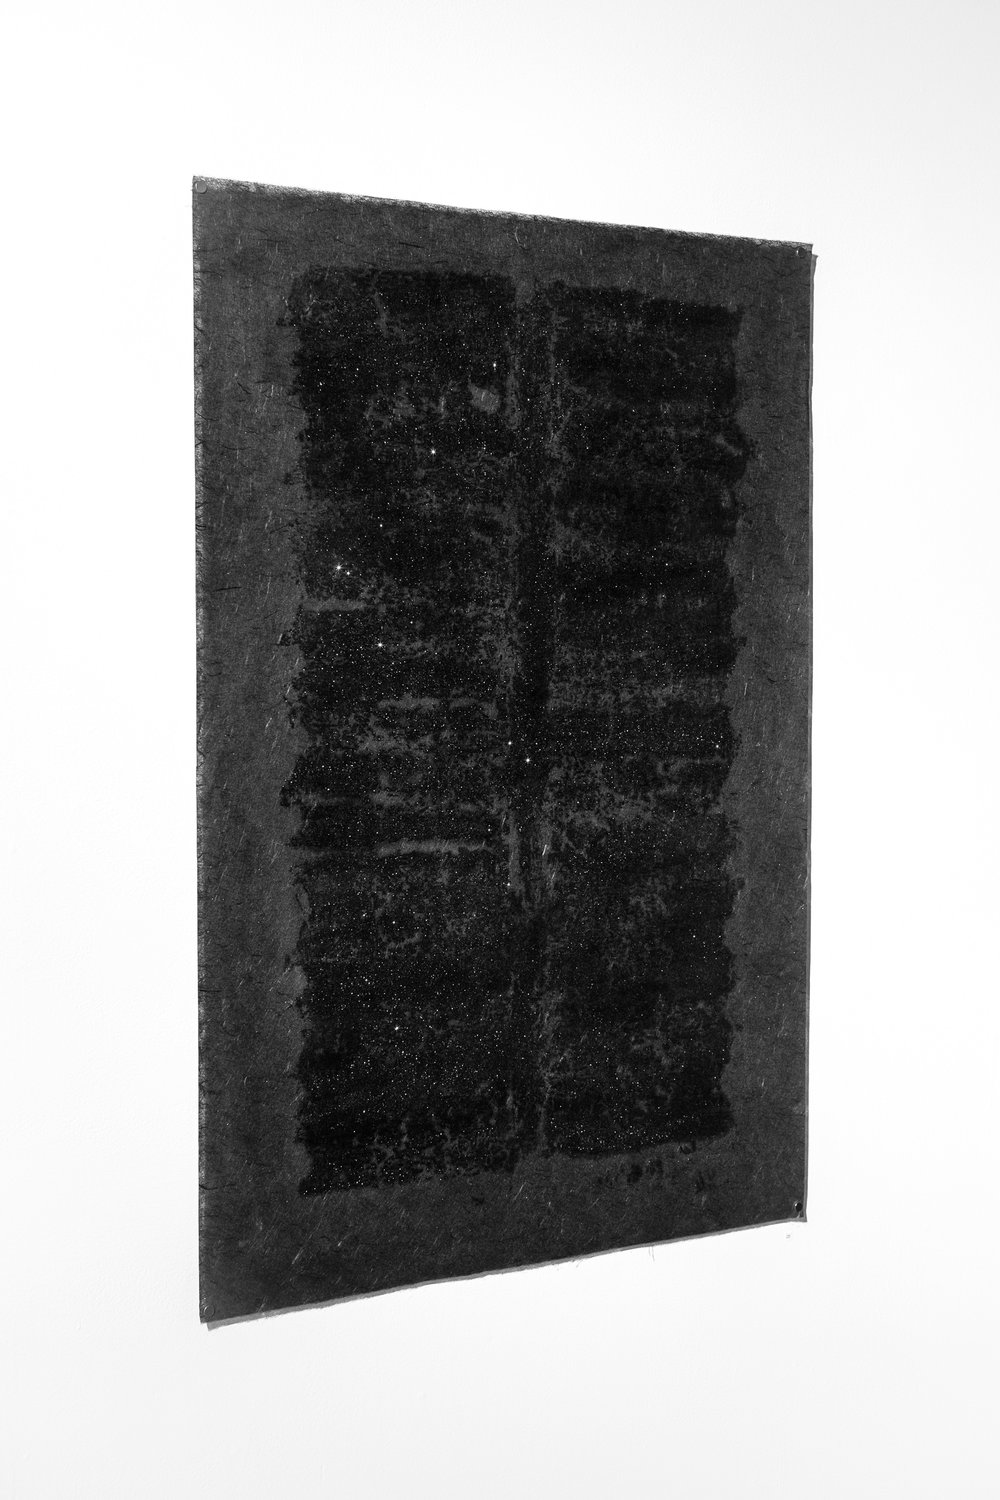 Gwen Tatro / Ore/gin – Black #5 / rolled driftwood oil-ink relief print on black Kozu rice paper with crushed tinted glass / 26 in x 36 in / 2018